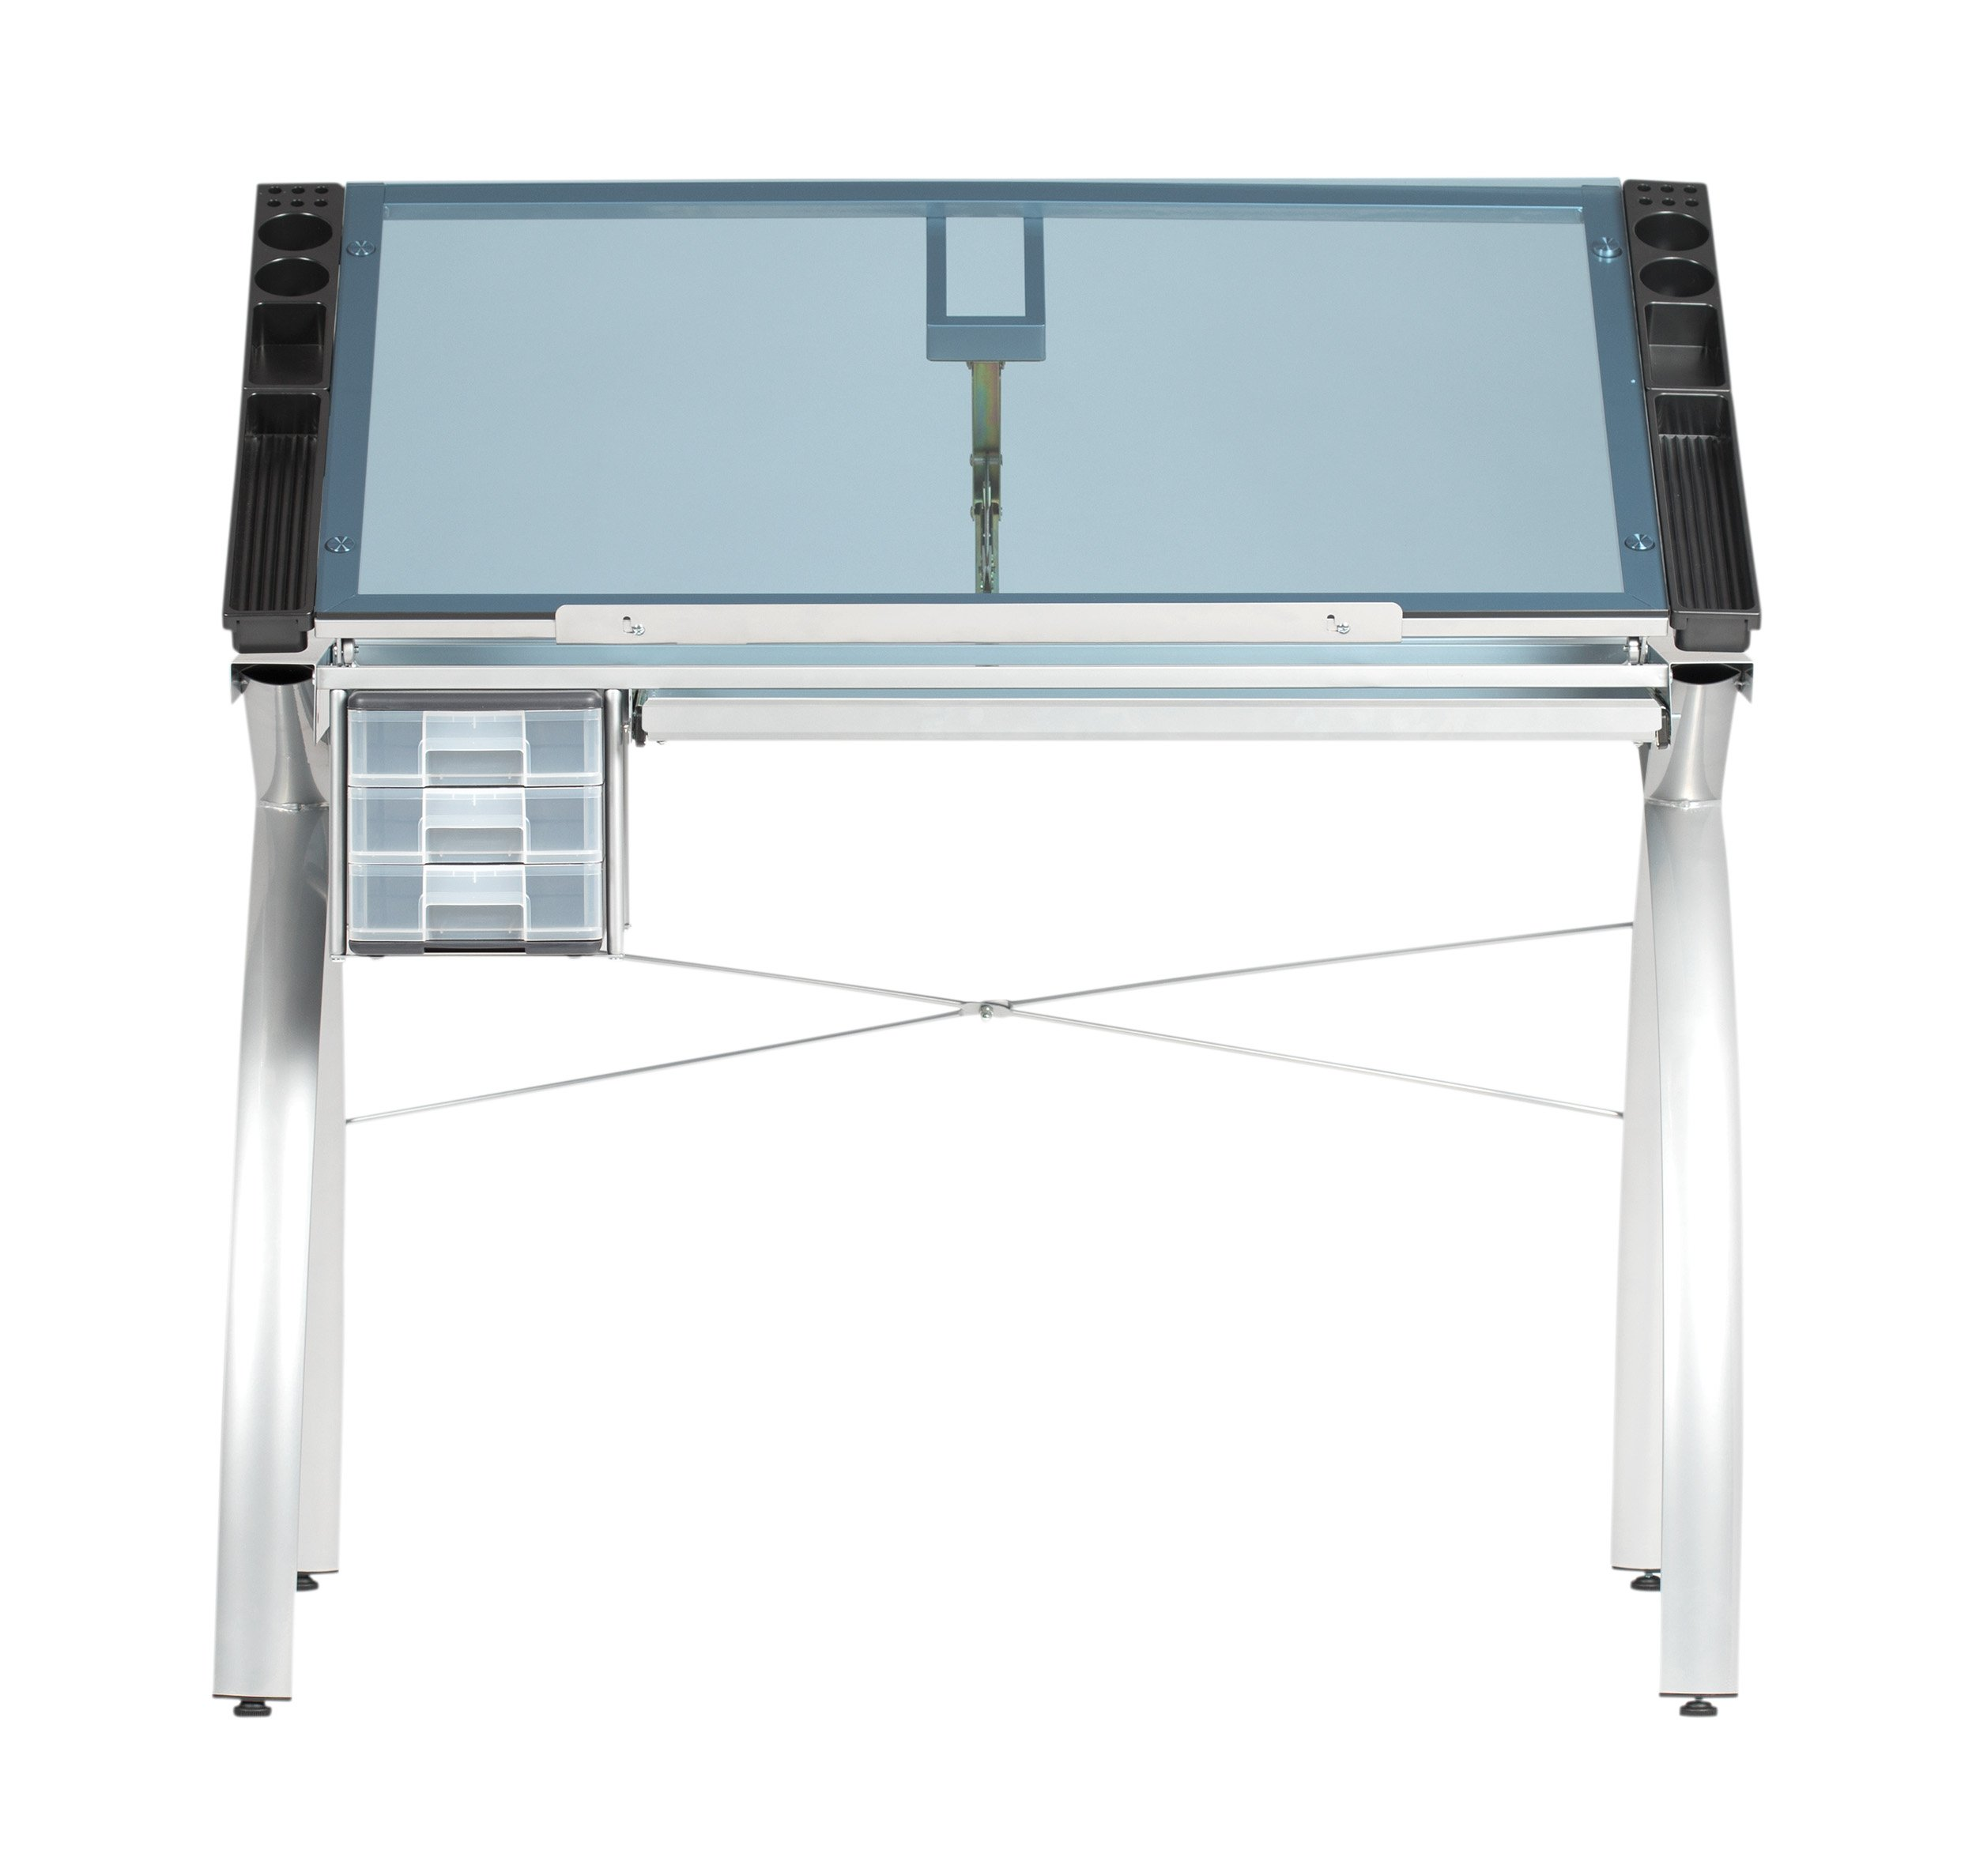 SD STUDIO DESIGNS Futura Modern Glass Top Adjustable Drafting Table Craft Table Drawing Desk Hobby Table Writing Desk Studio Desk with Drawers, 38''W x 24''D, Silver / Blue Tempered Glass by SD STUDIO DESIGNS